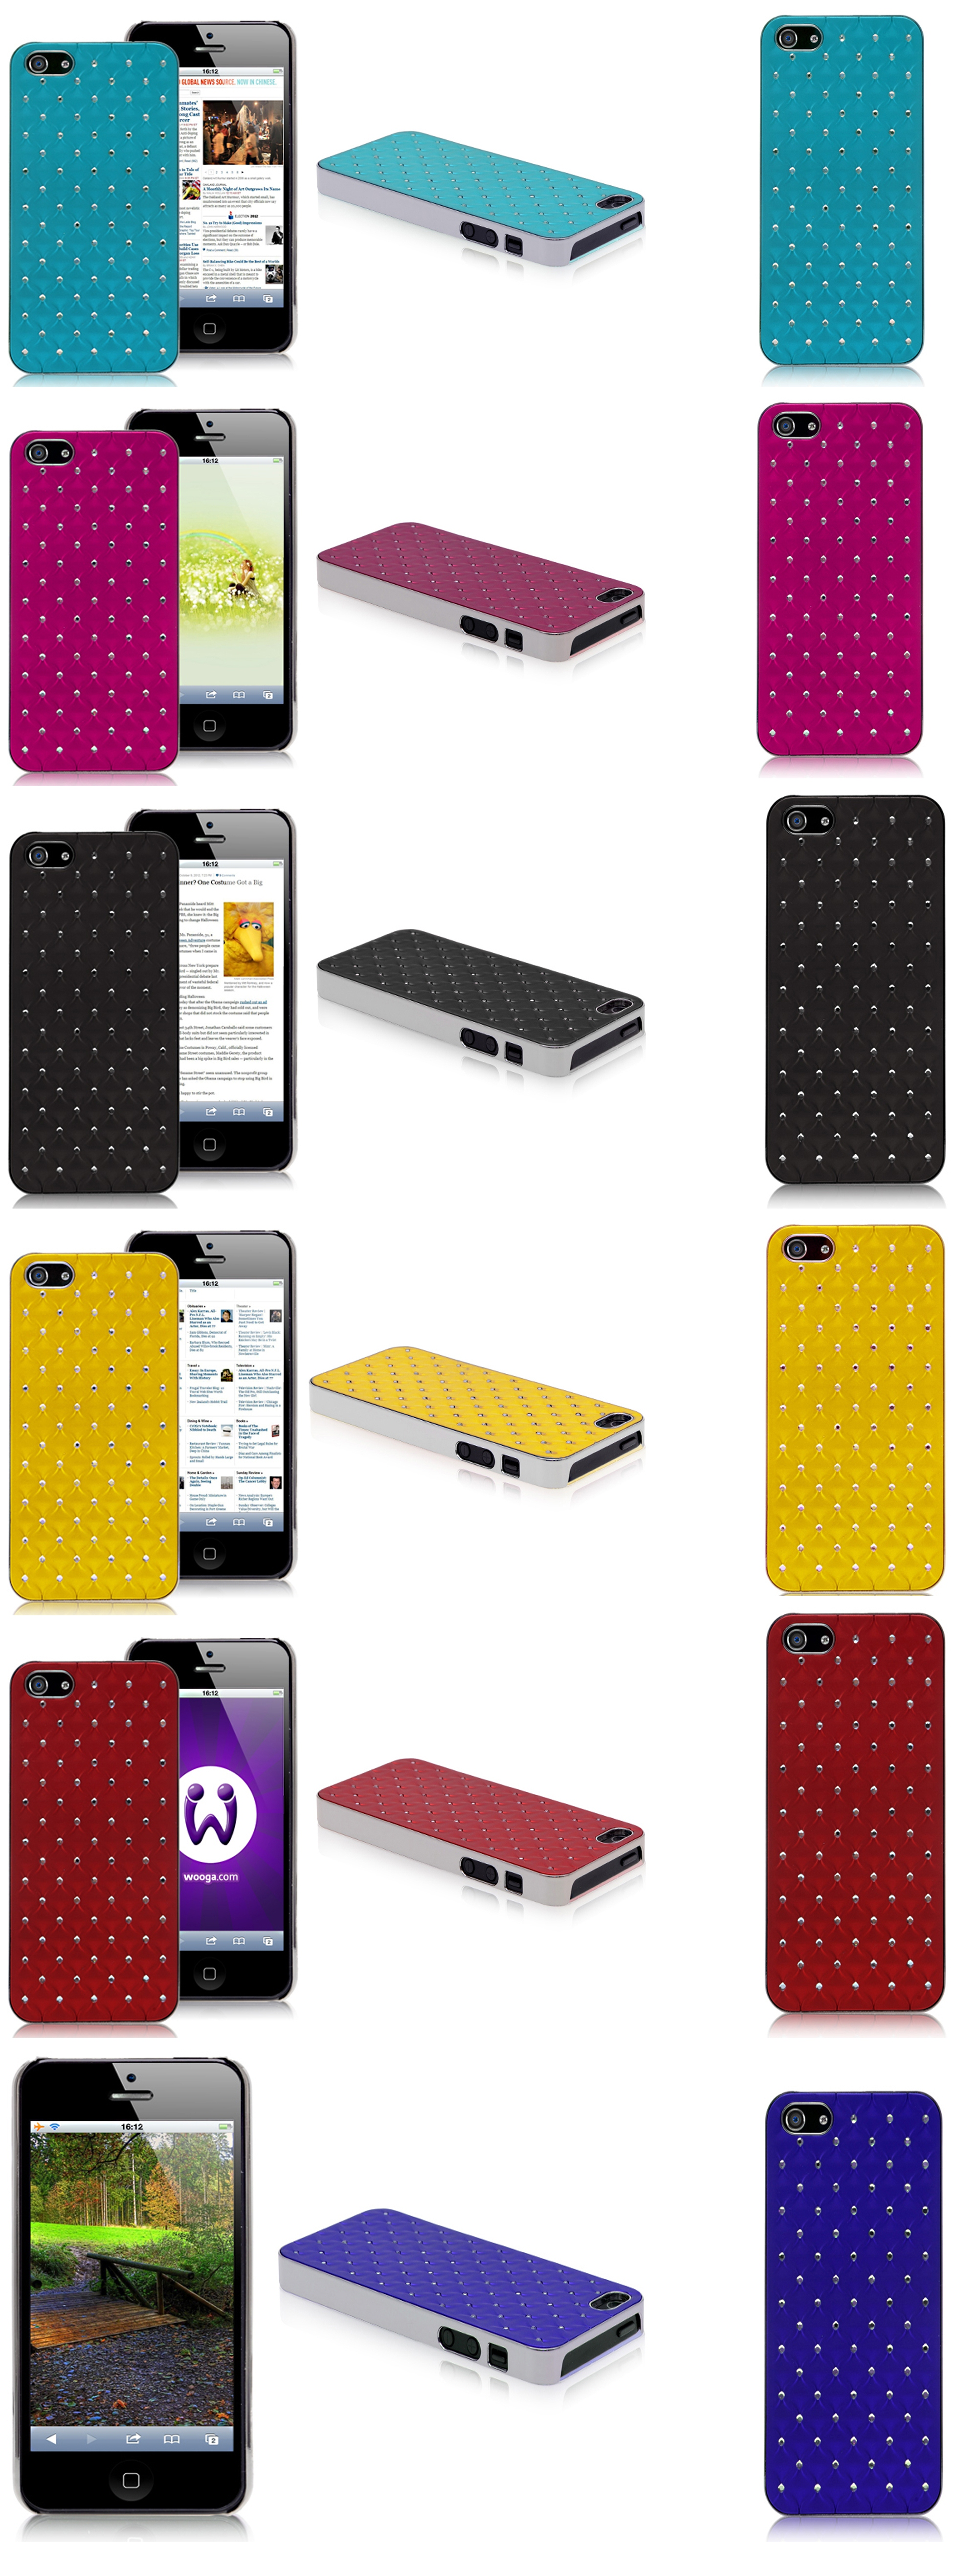 Metal iPhone 5 Cases - Colorful covers for iPhone 5